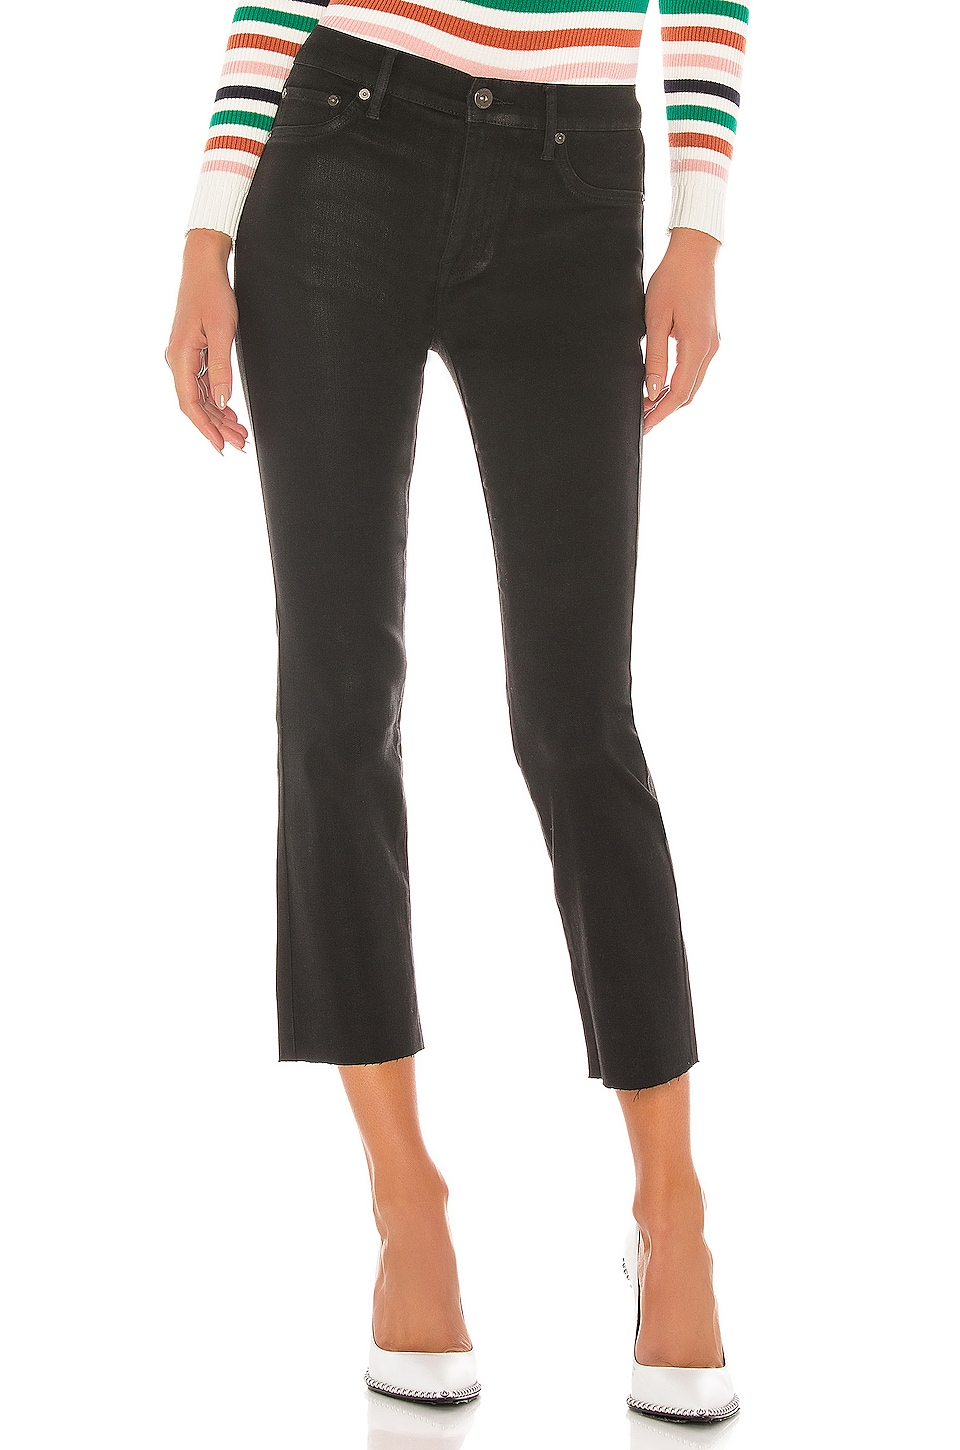 PISTOLA Lennon High Rise Cropped Bootcut in Slick